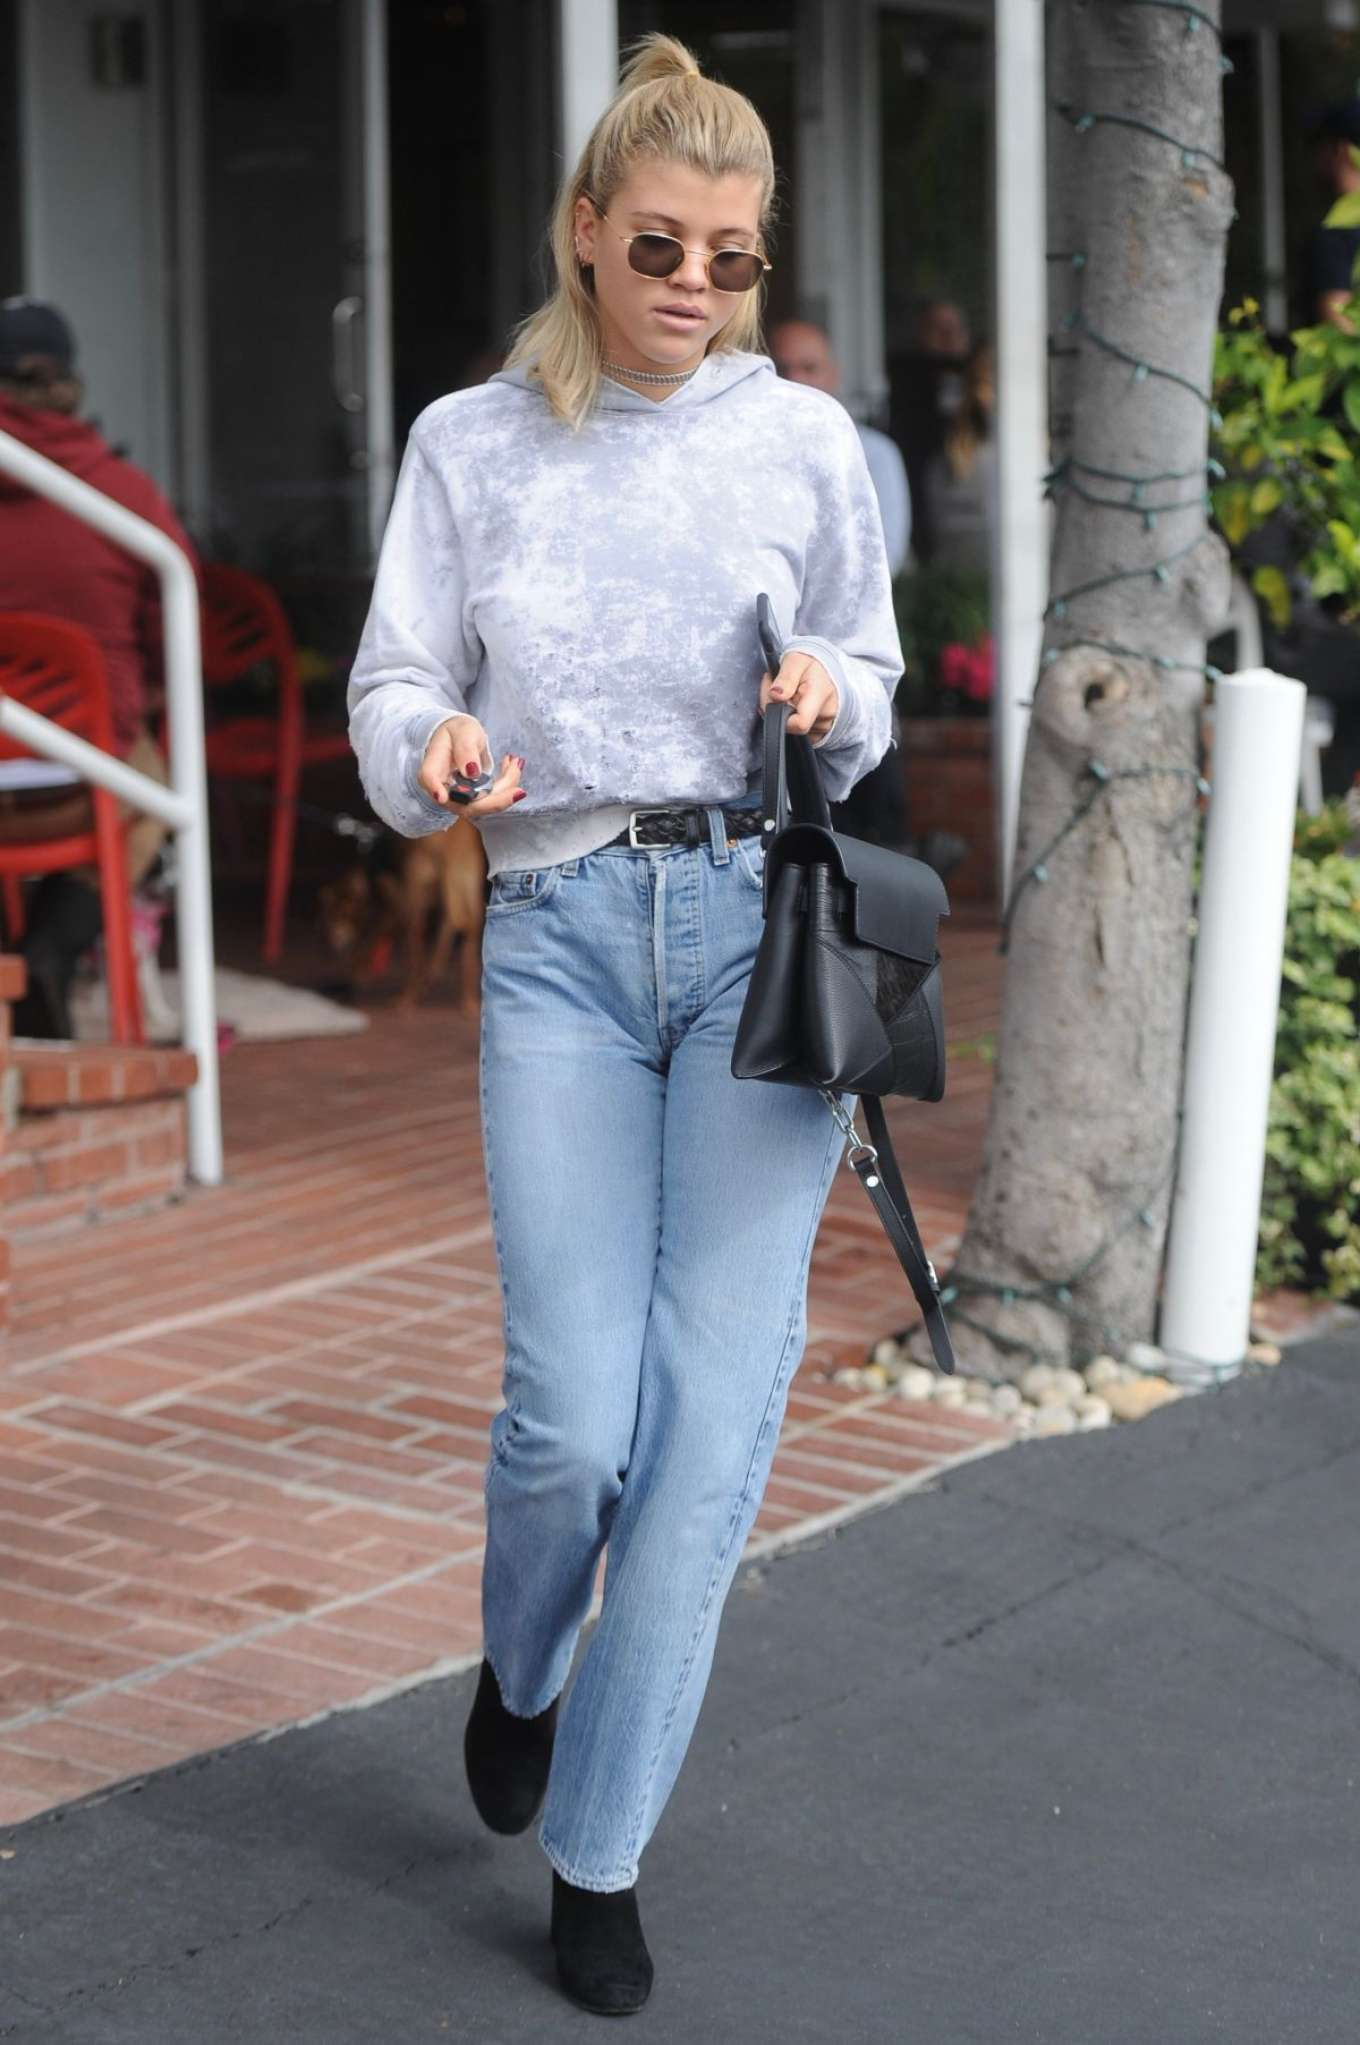 Sofia Richie 2017 : Sofia Richie in Jeans Out in Los Angeles -06